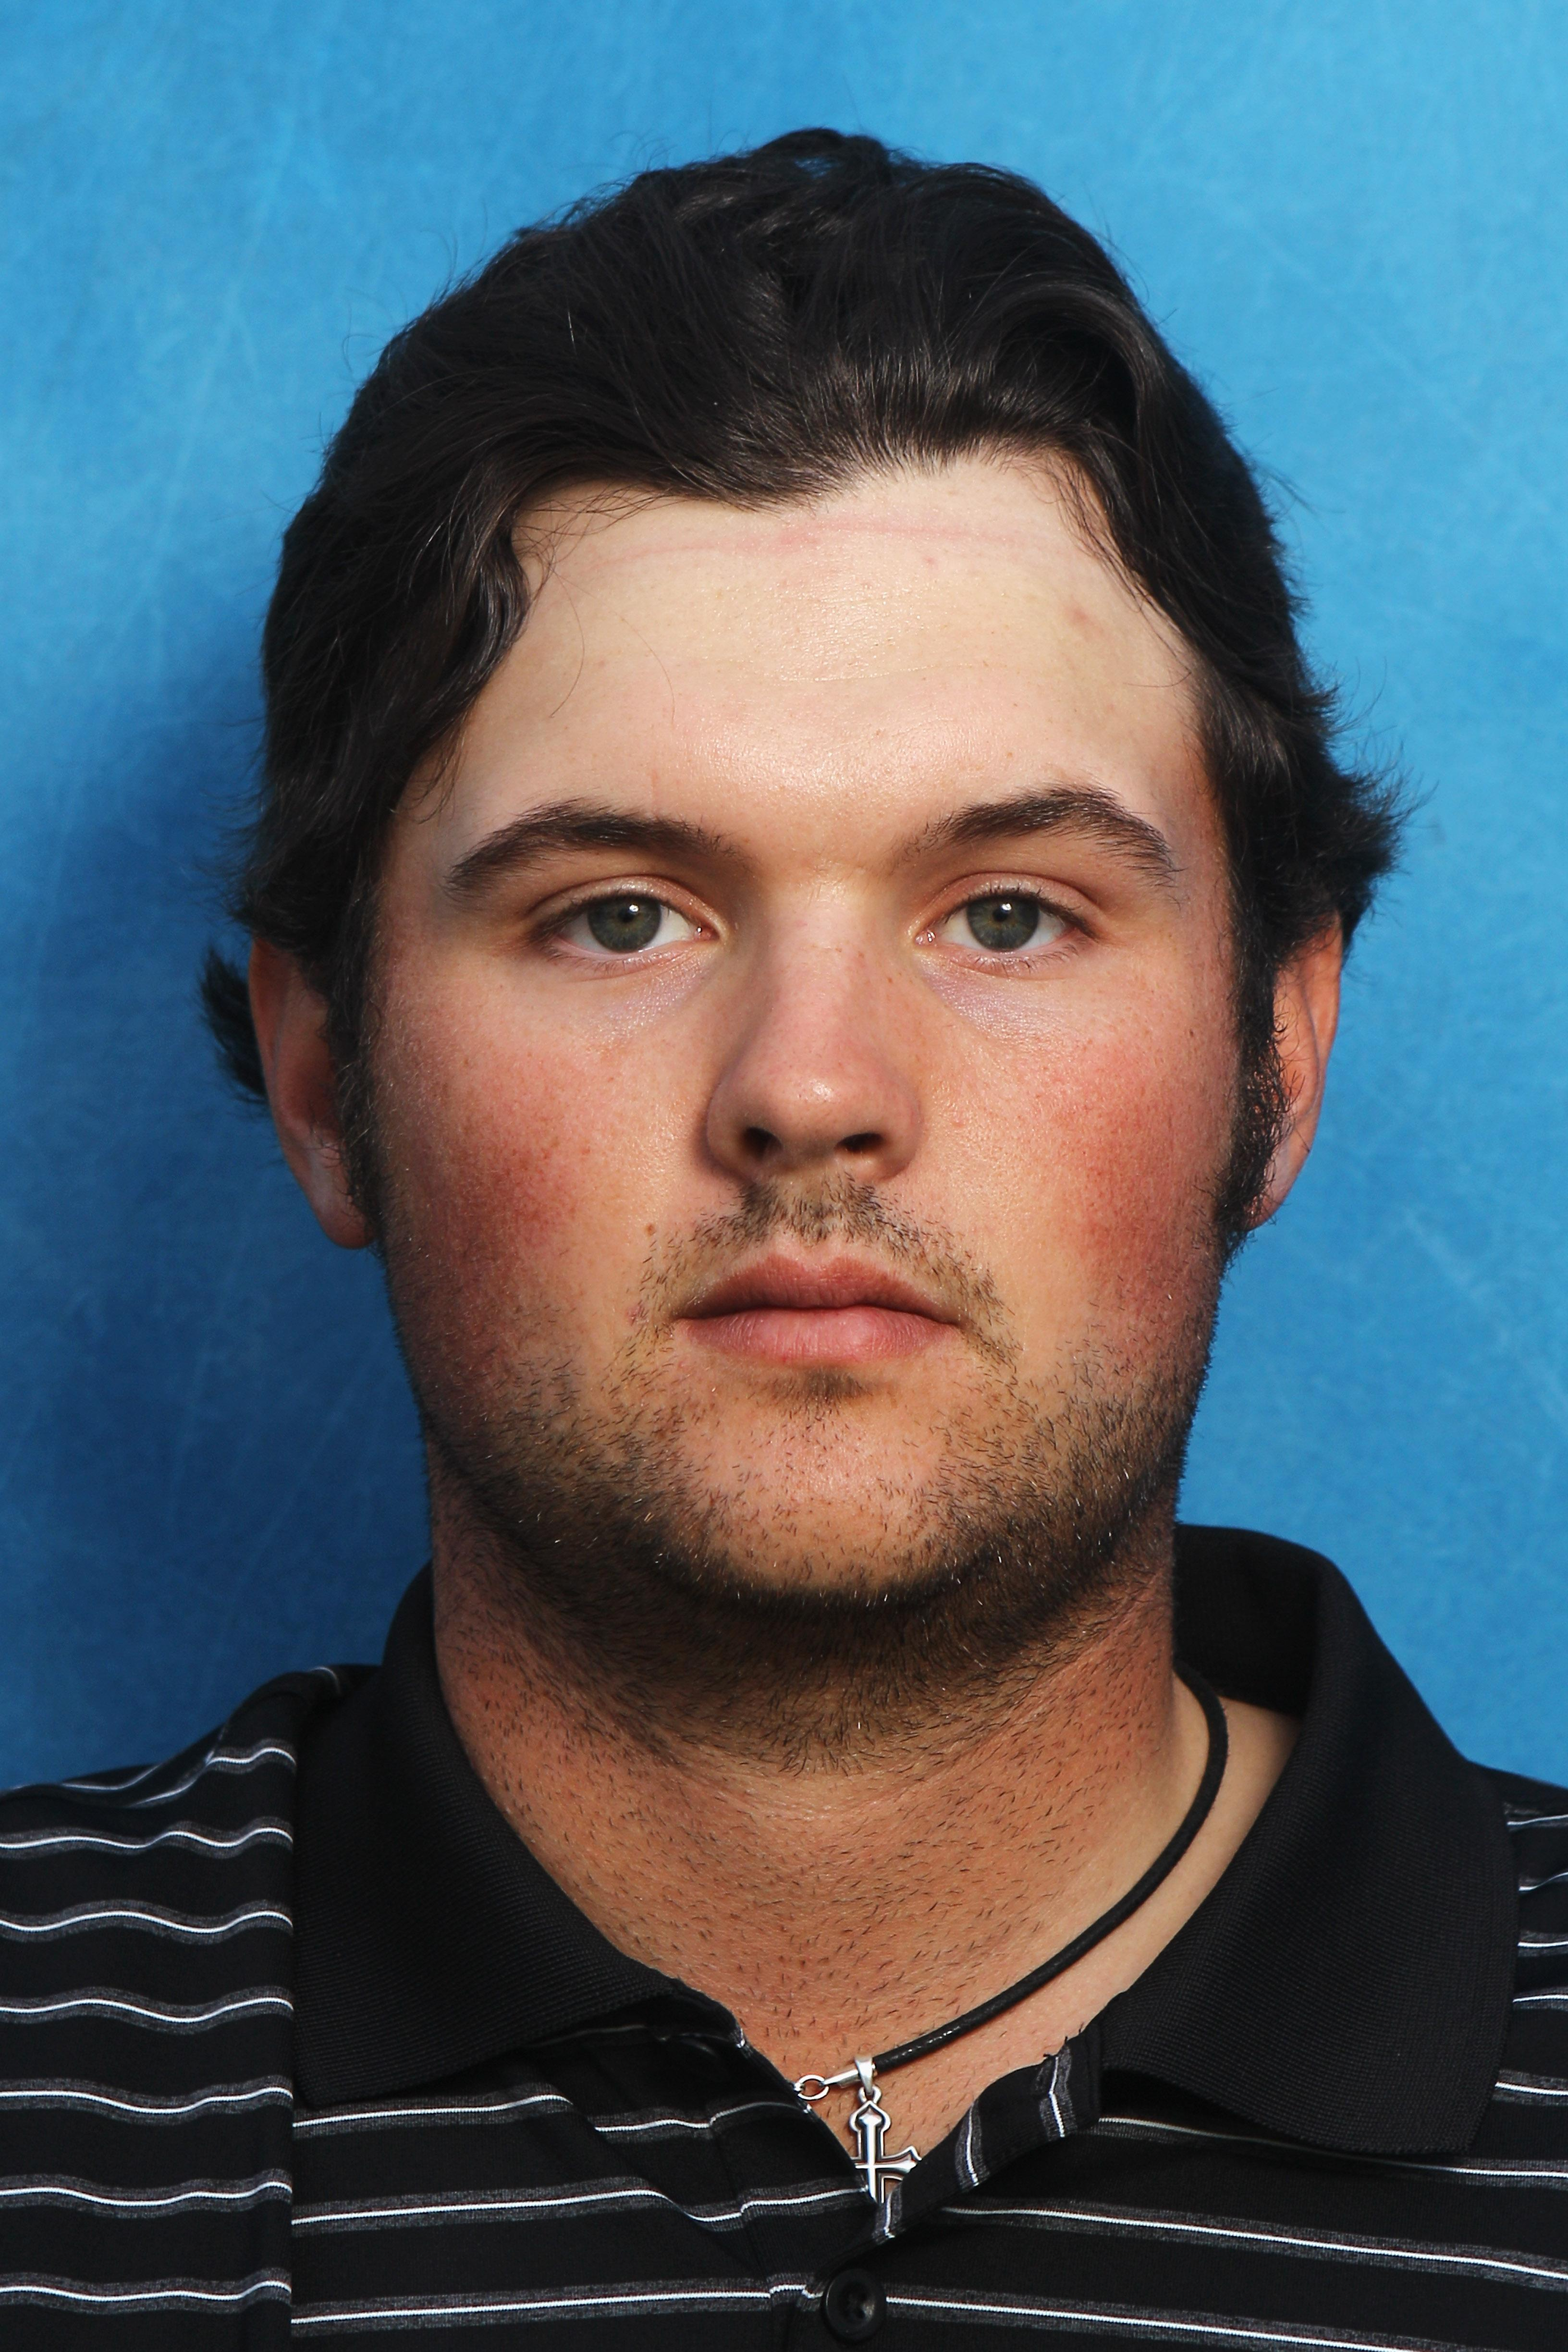 A headshot of Reed during his first season as a pro in 2011